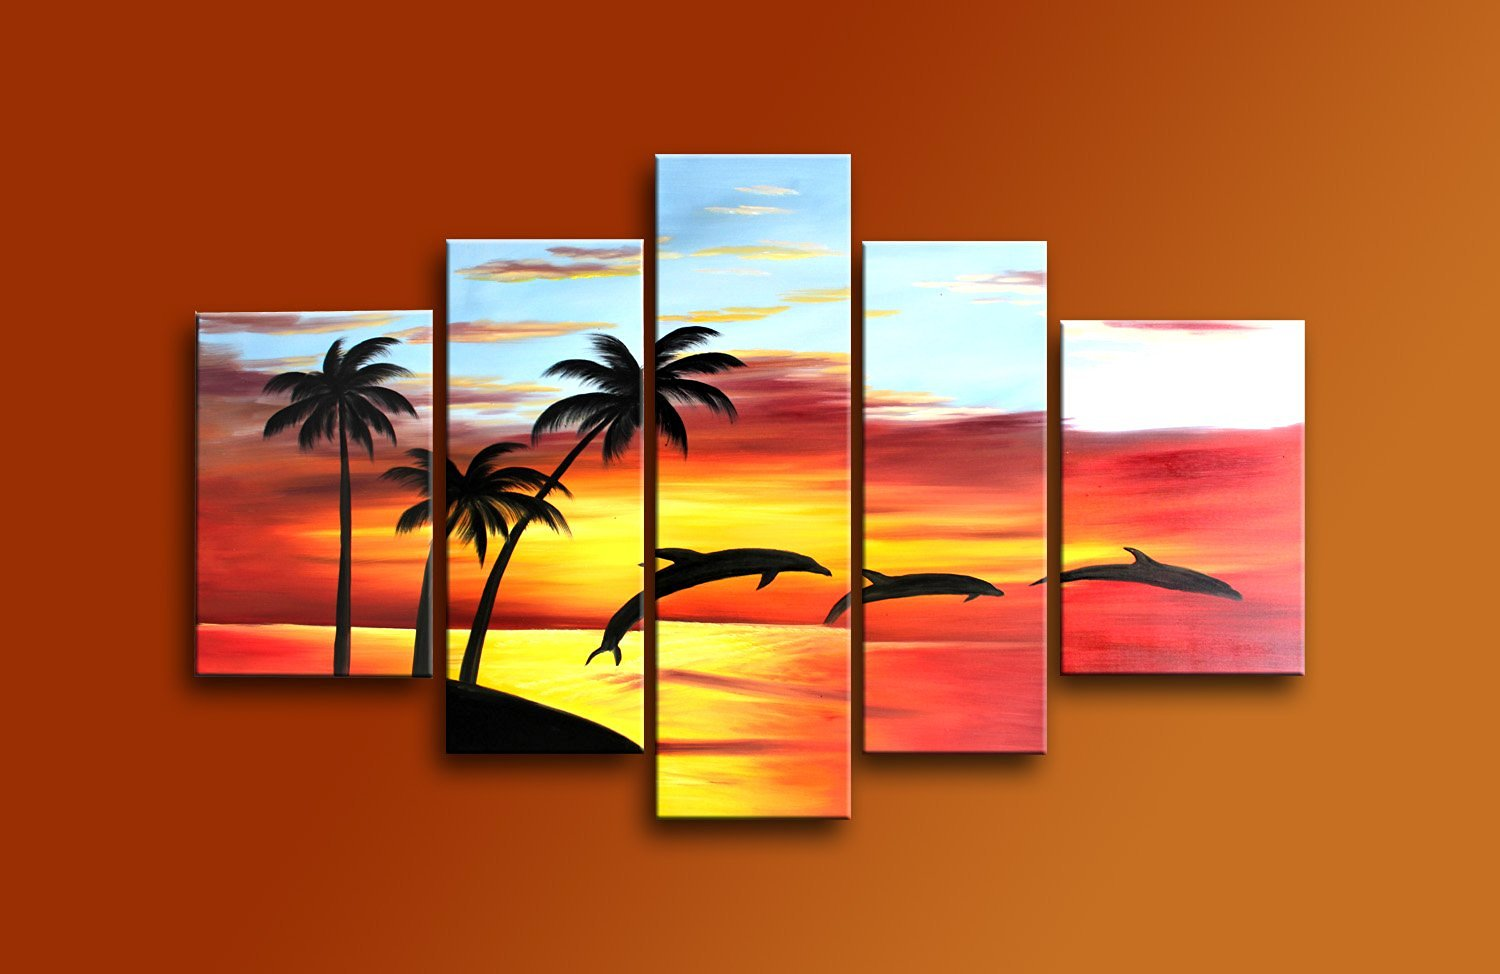 Ode-Rin Art Christmas Gift Christmas Gift Hand Painted Ode-Rin Art Christmas Gift Mordern Oil Paintings Jumping Dolphins In Beach Sunset Landscape 5 Panels Wood Inside Framed Hanging For Wall Art